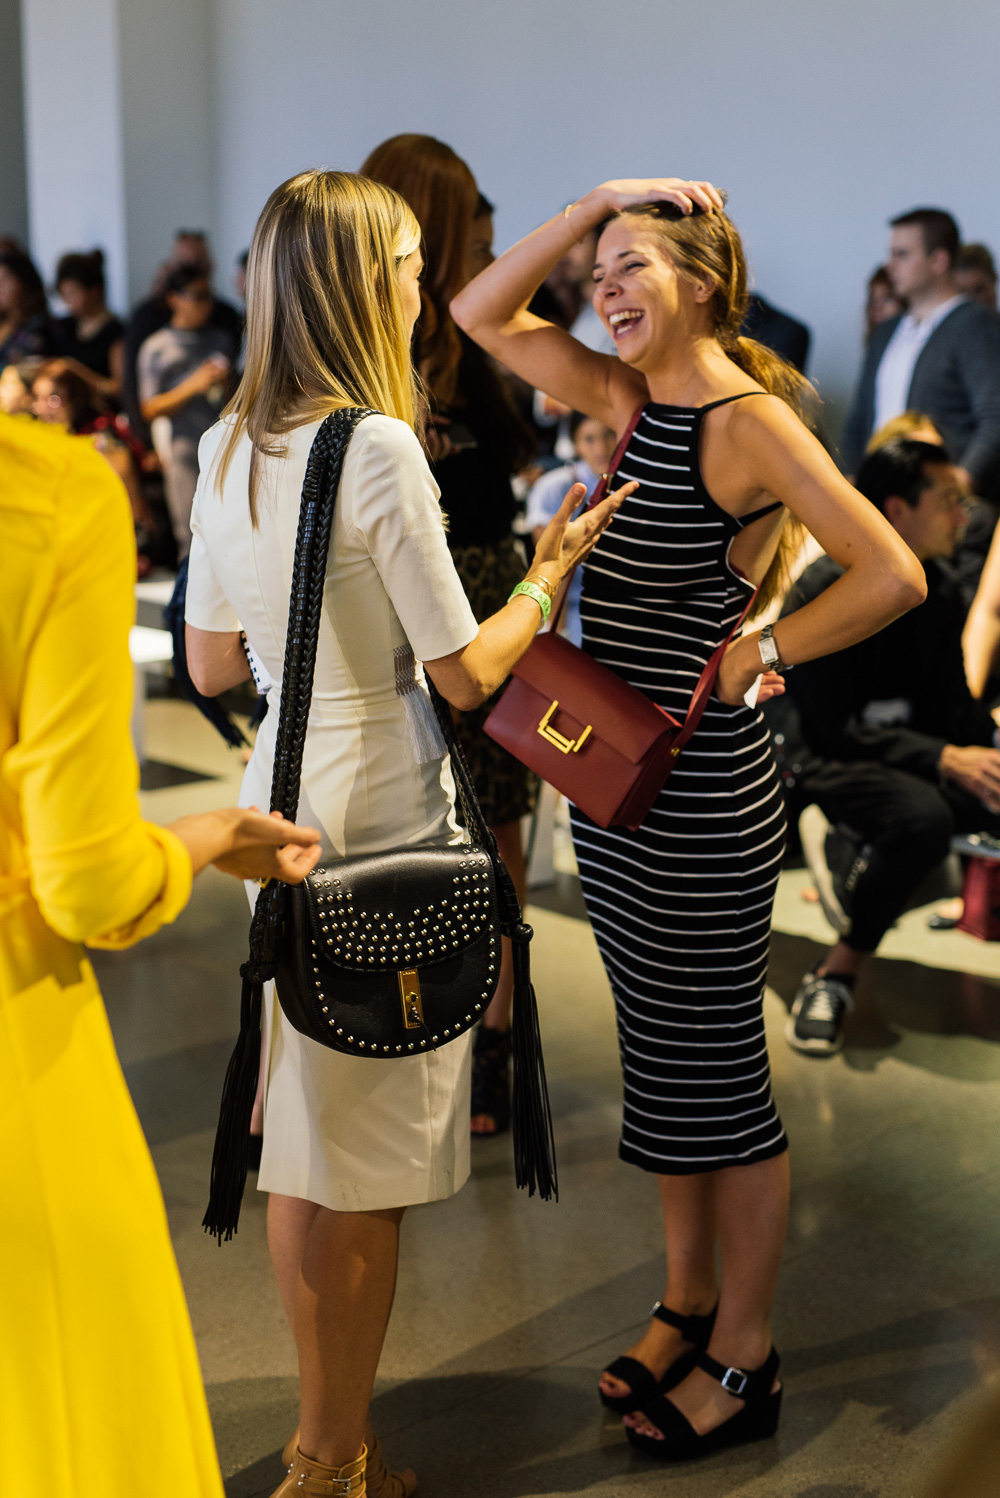 yves saint laurent patent leather bag - The Best Bags of NYFW Spring 2016 Street Style �C Day 4 - Page 5 of ...